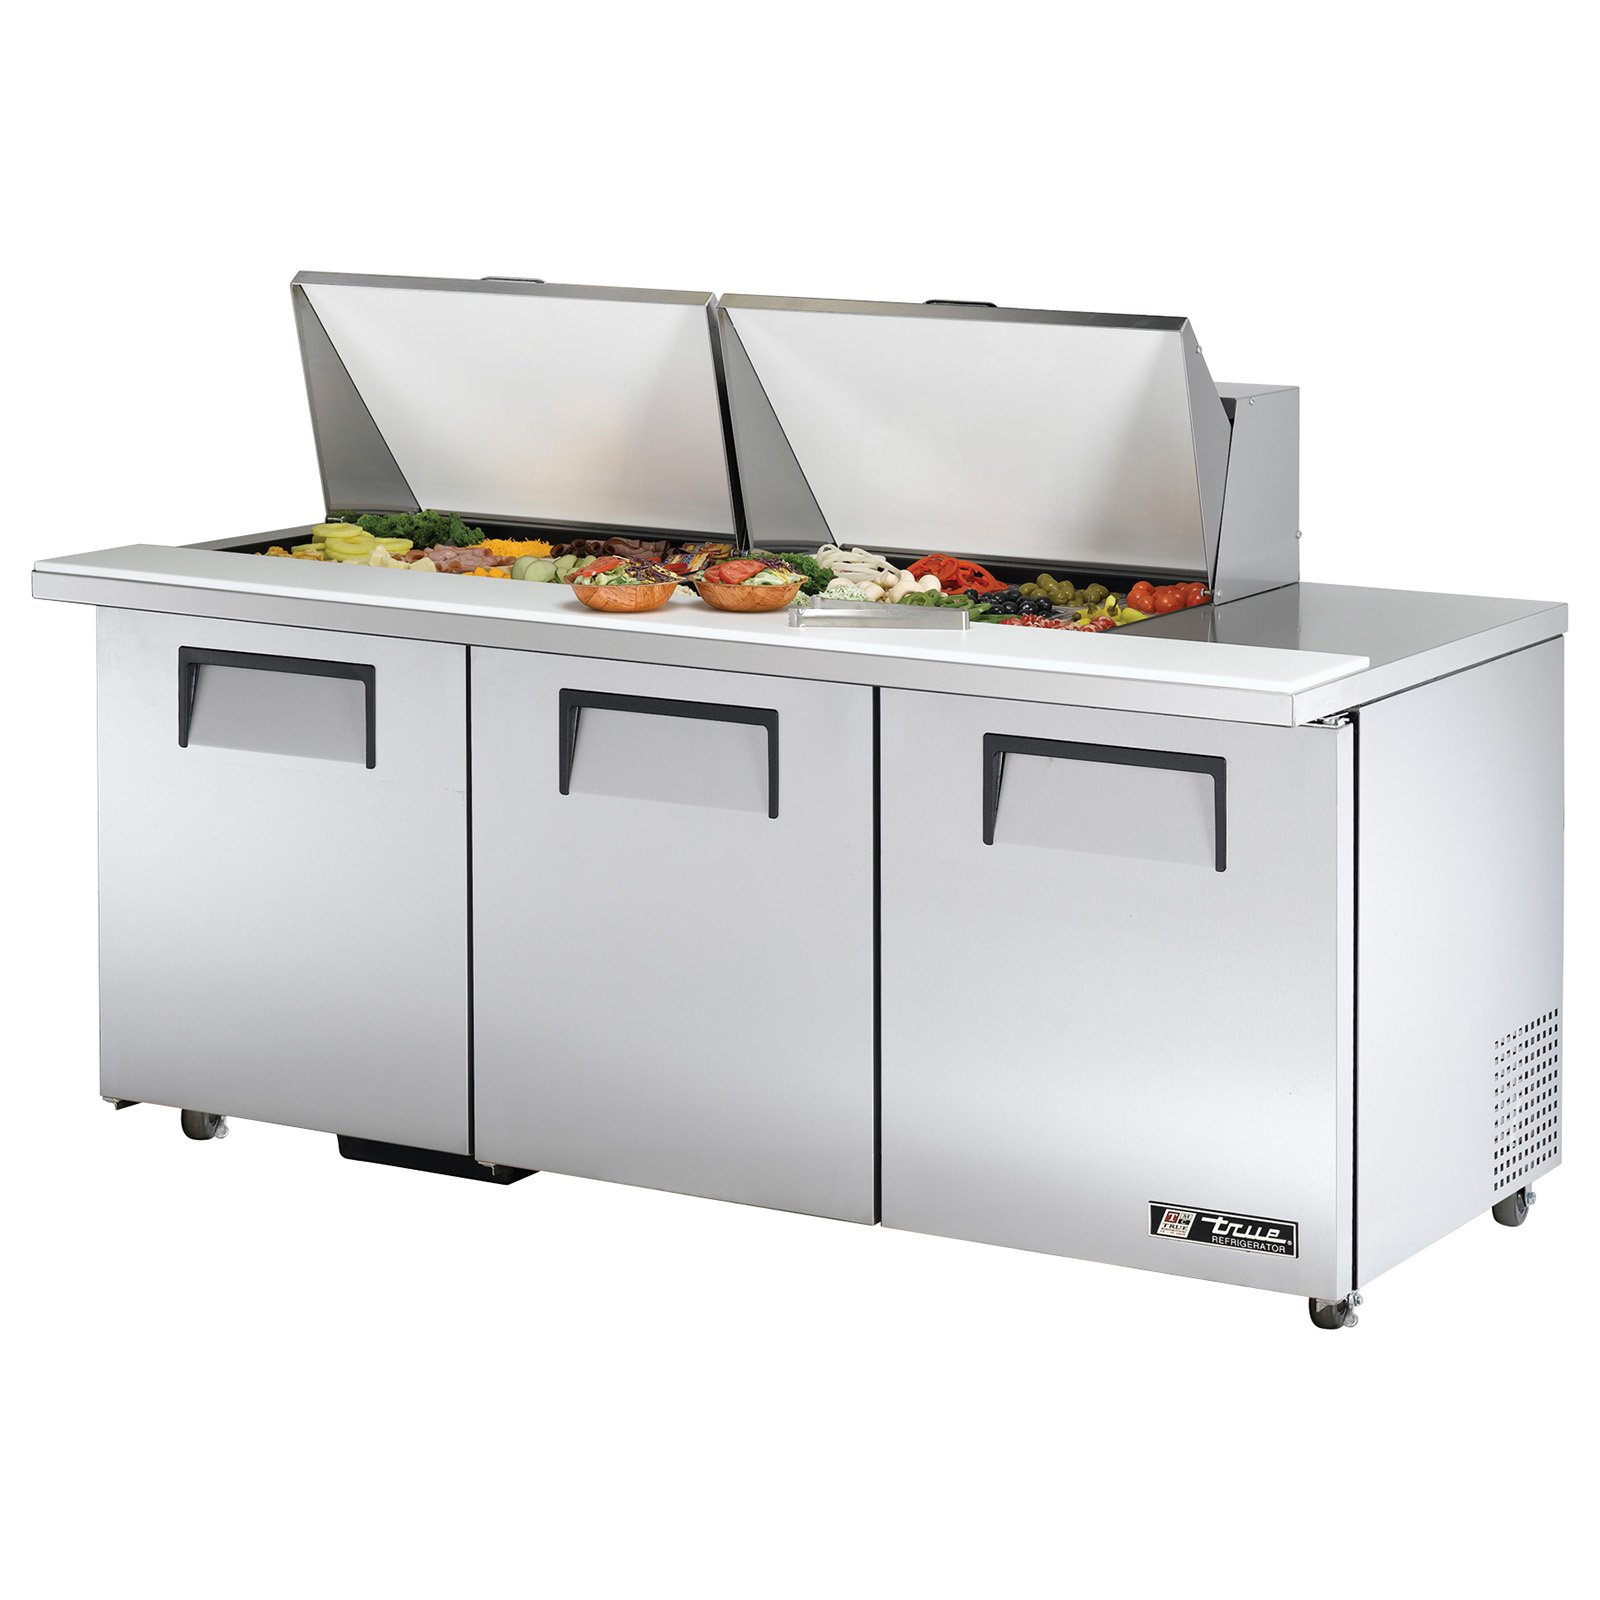 TSSU-72-24M-B-ST-ADA True - ADA Compliant Mega Top Sandwich/Salad Unit (24) 1/6 (4